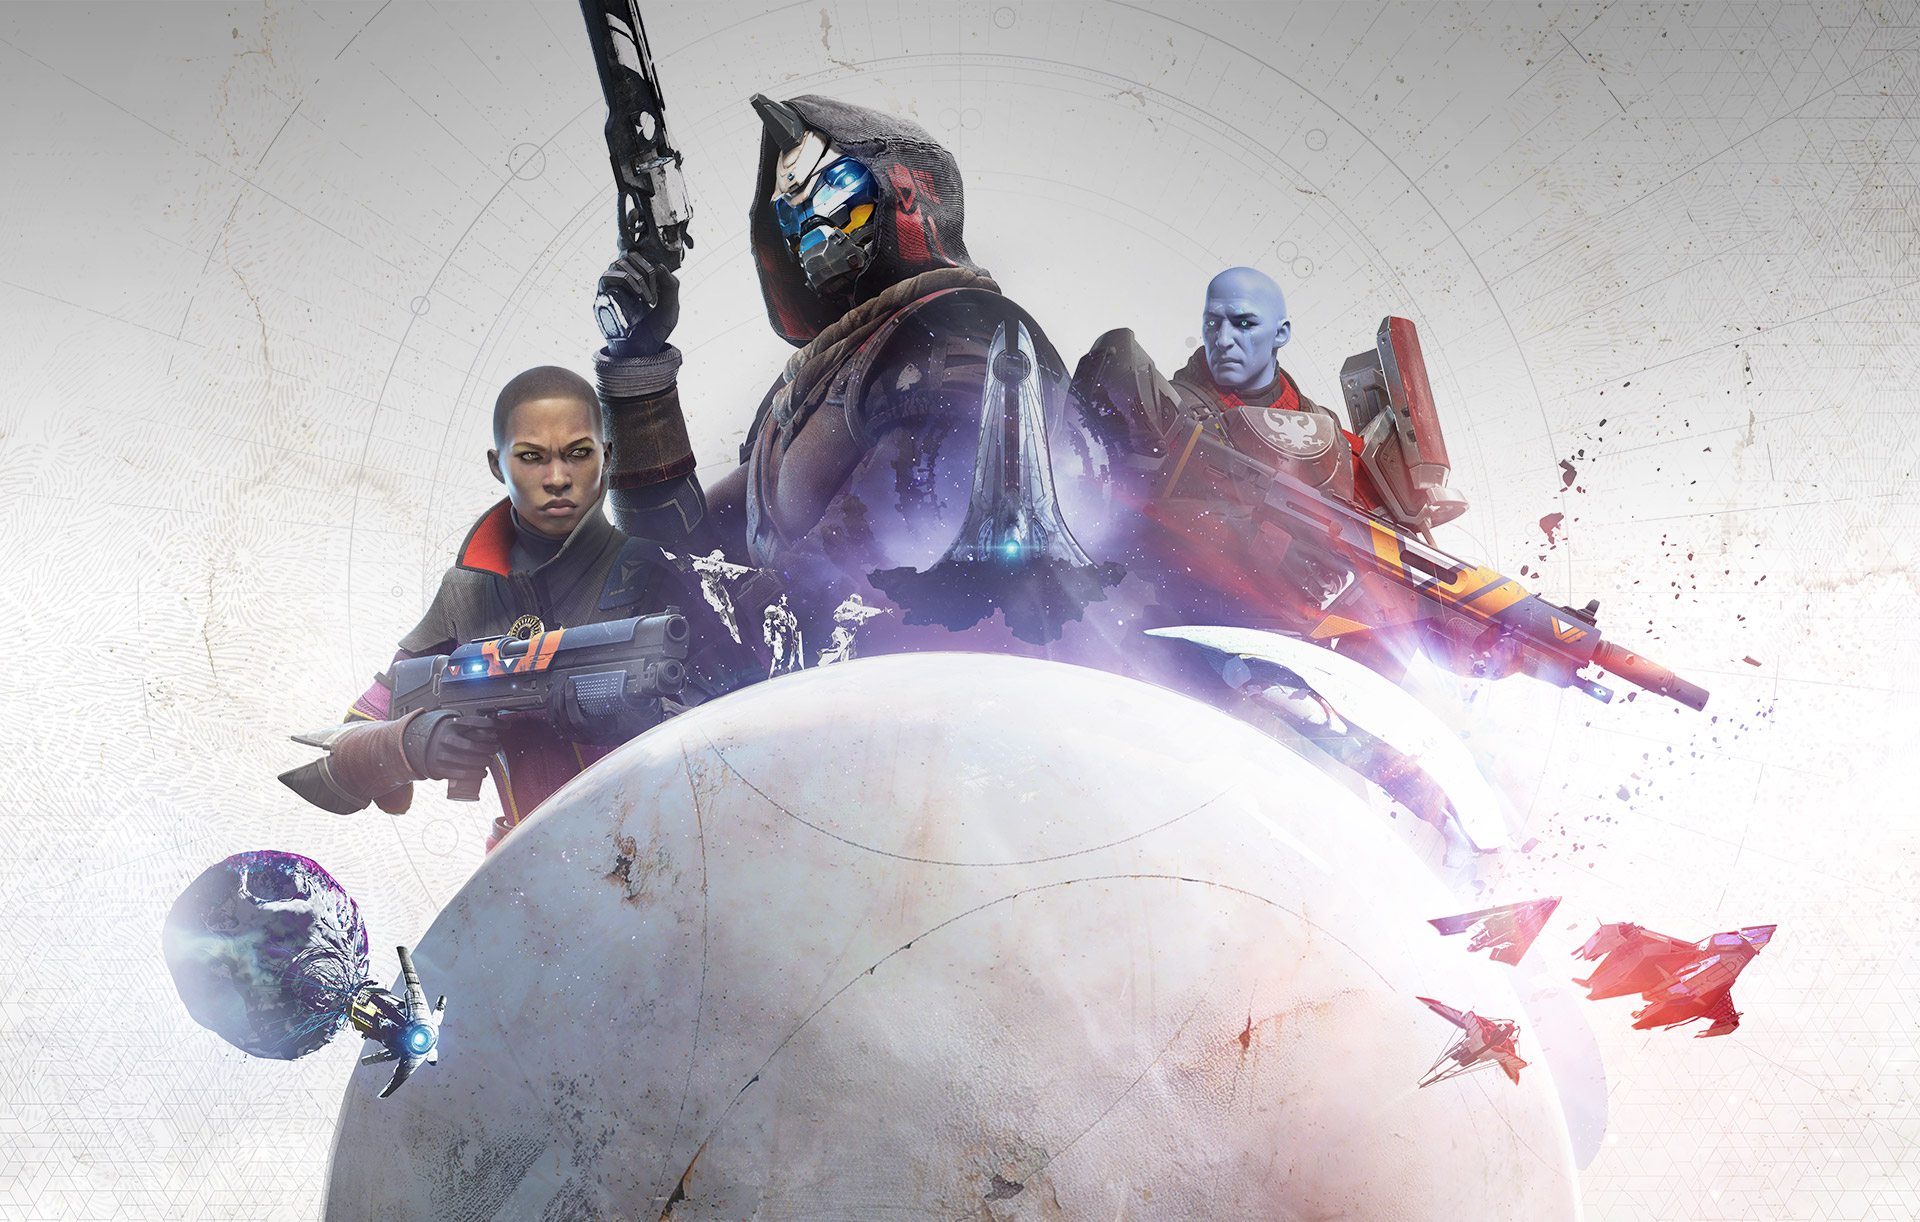 There'll be no crossplay for Destiny 2 on Stadia - Gaming Today